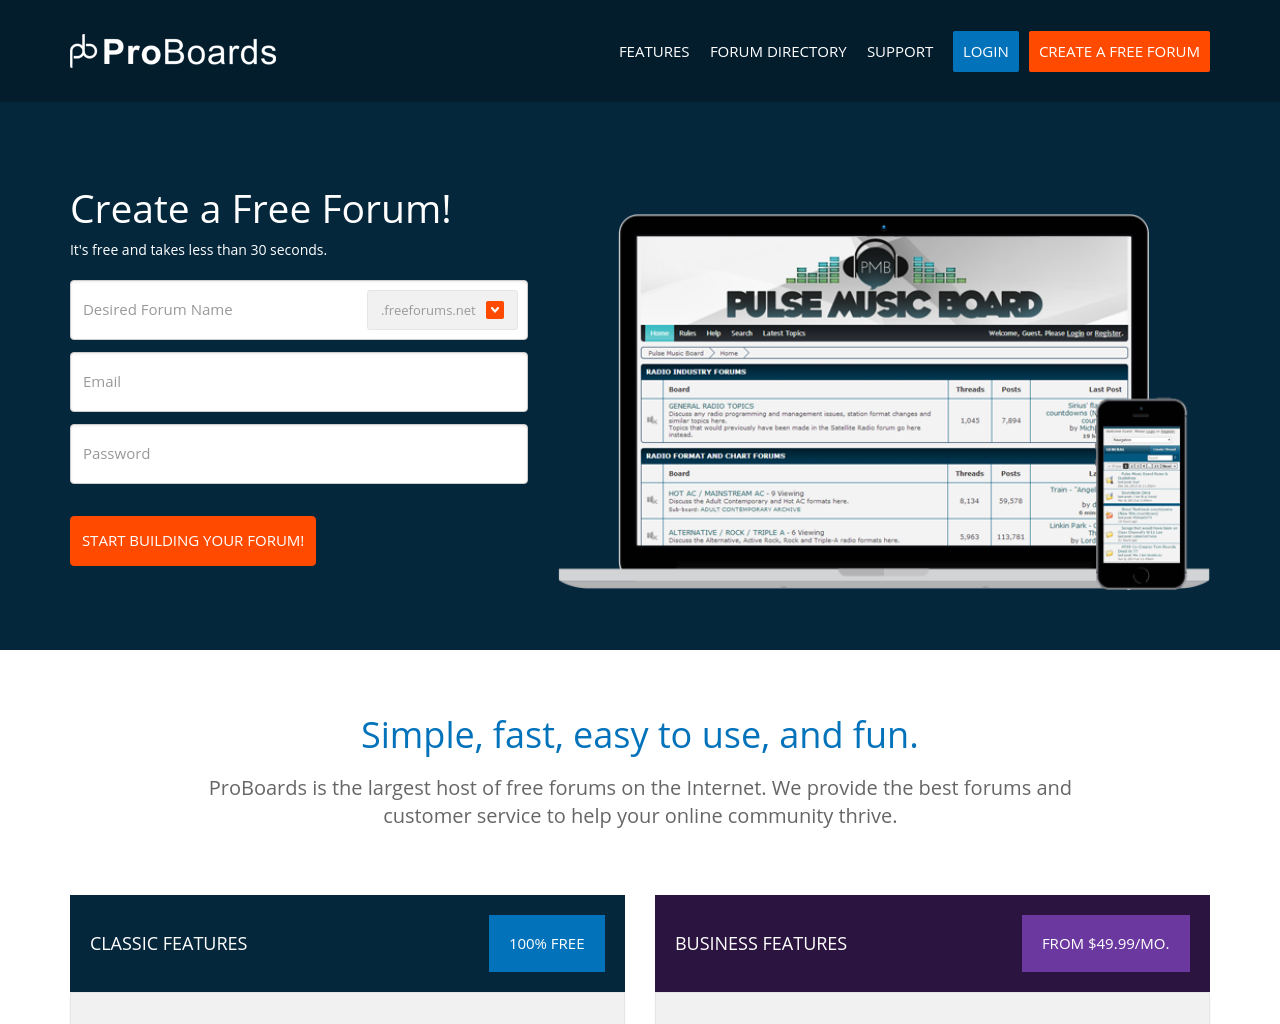 ProBoards Advertising Mediakits, Reviews, Pricing, Traffic